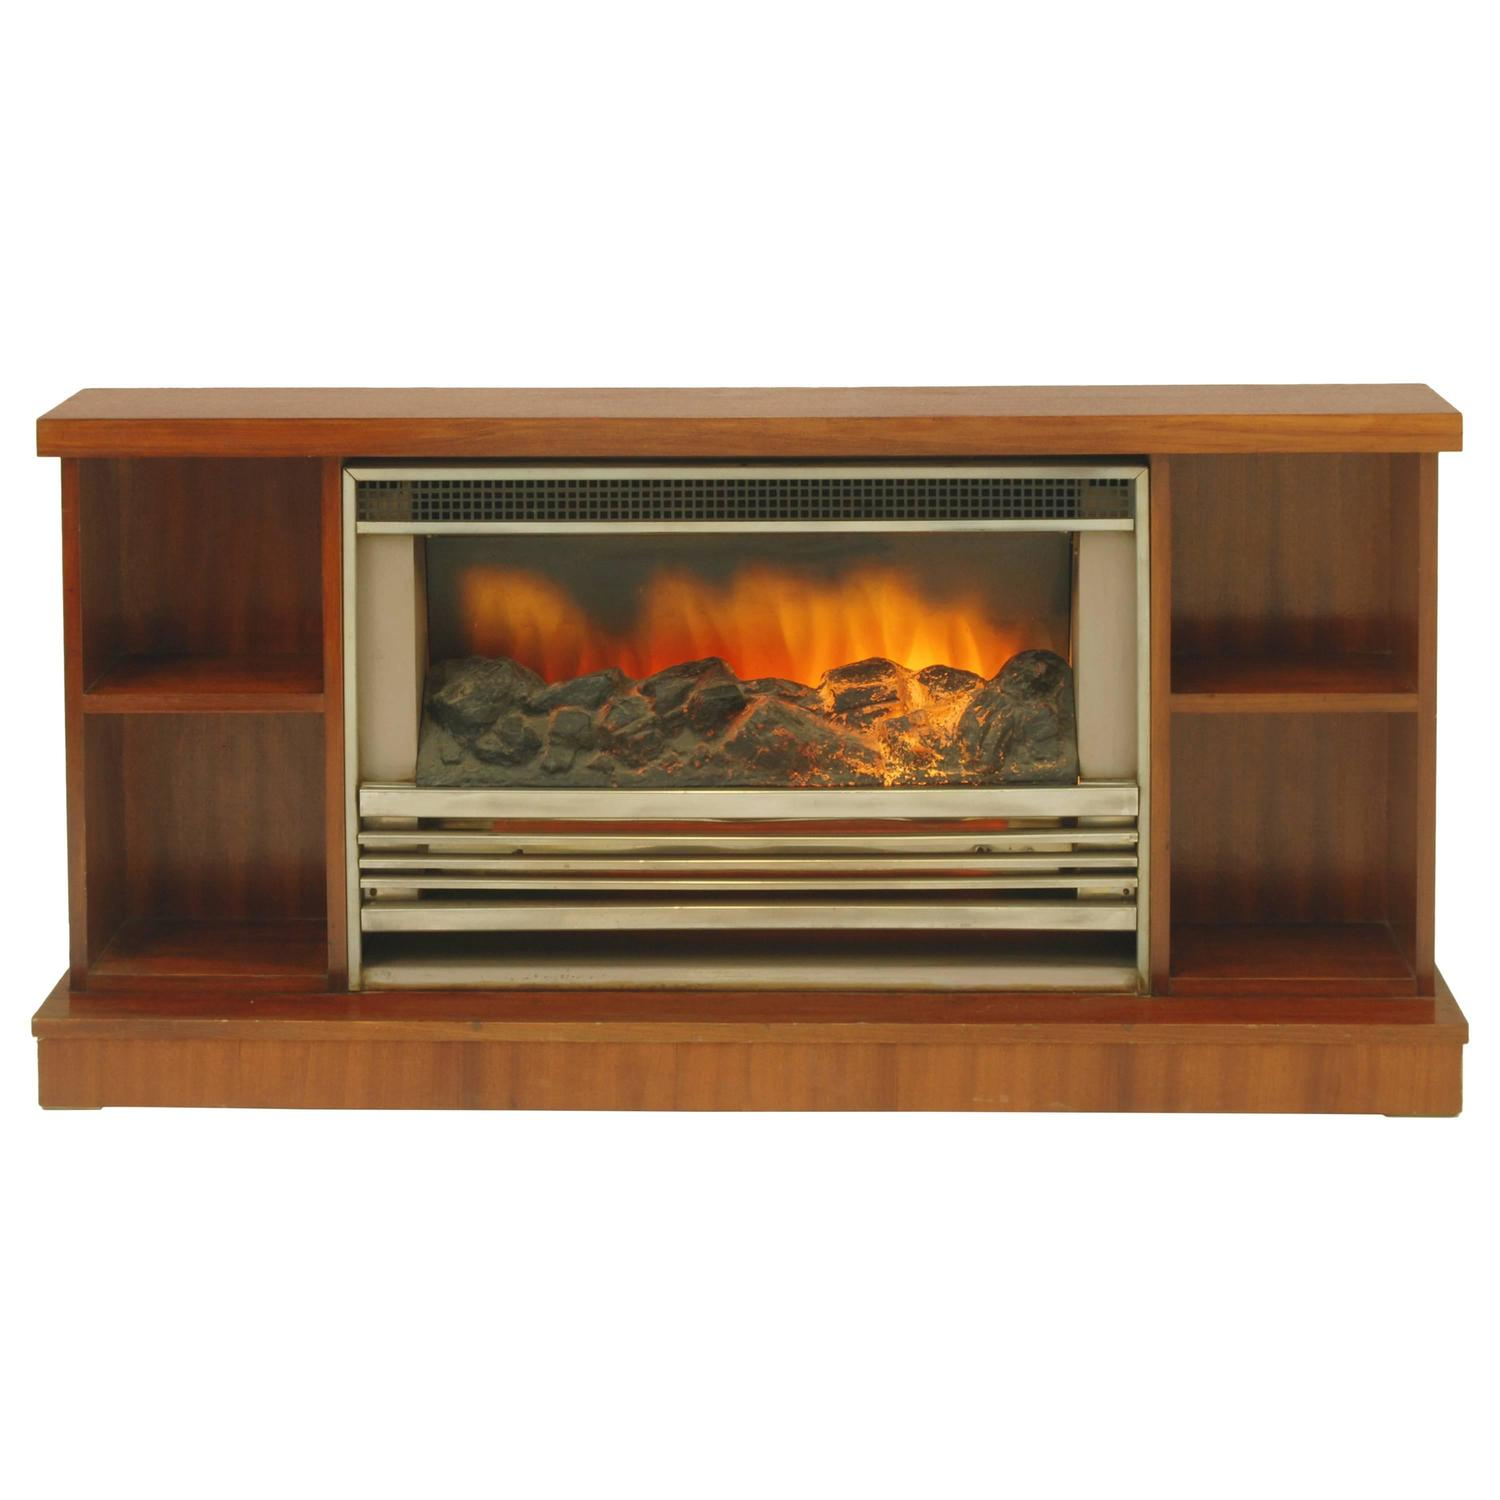 1960s fireplaces and mantels 16 for sale at 1stdibs